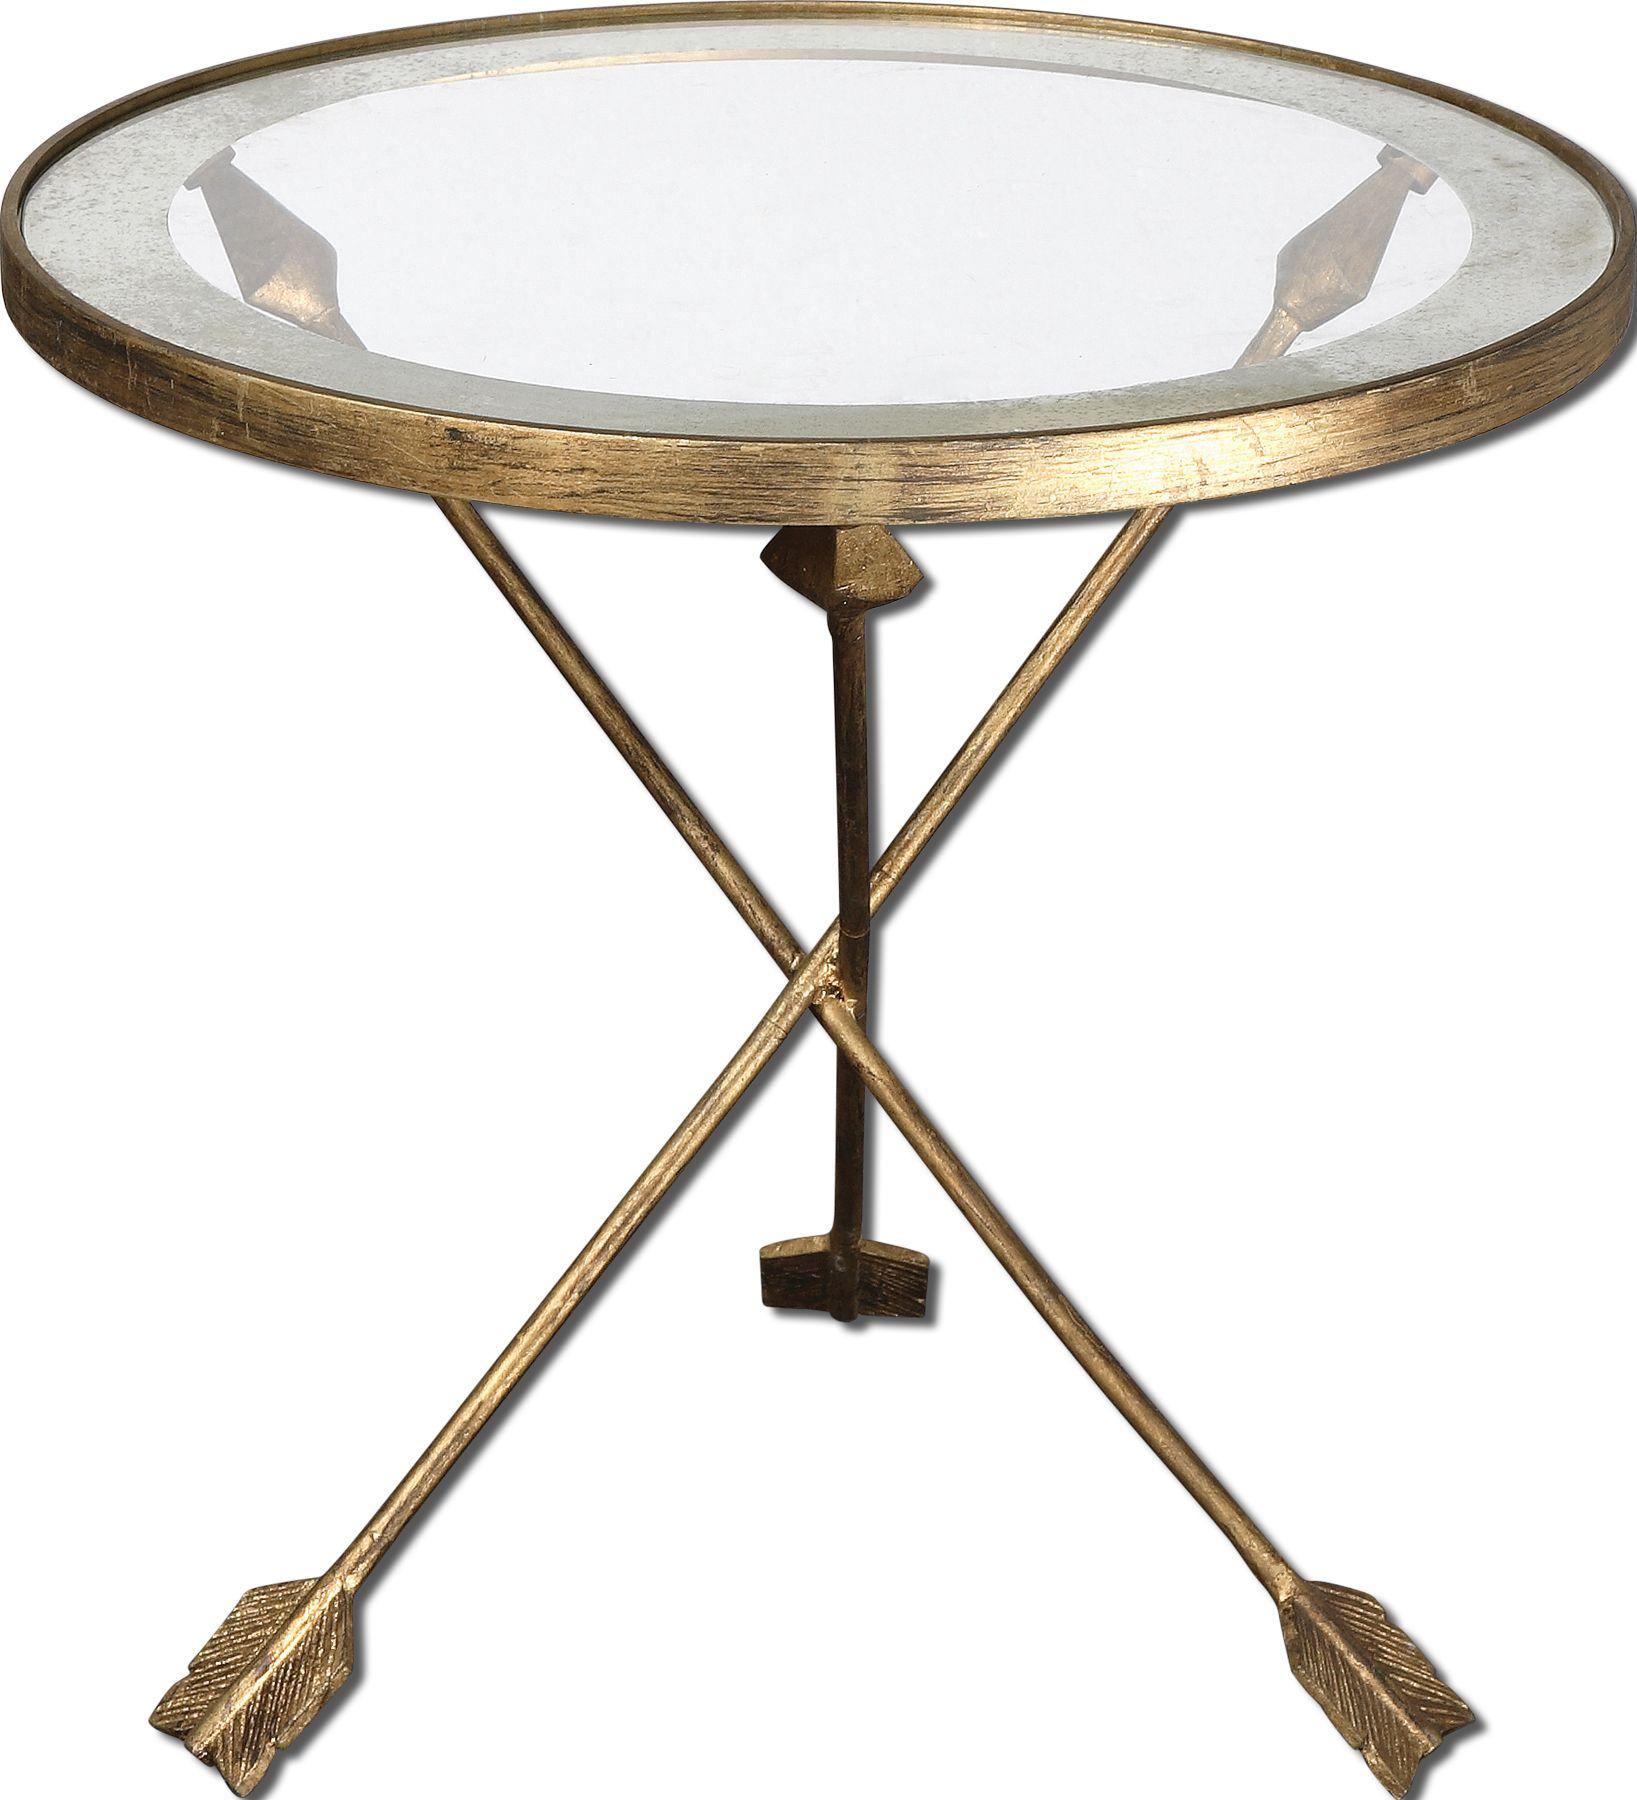 uttermost accent furniture occasional tables aero products color table grey round coffee long narrow bar comfy outdoor chair nate berkus gold with marble top inch vinyl tablecloth